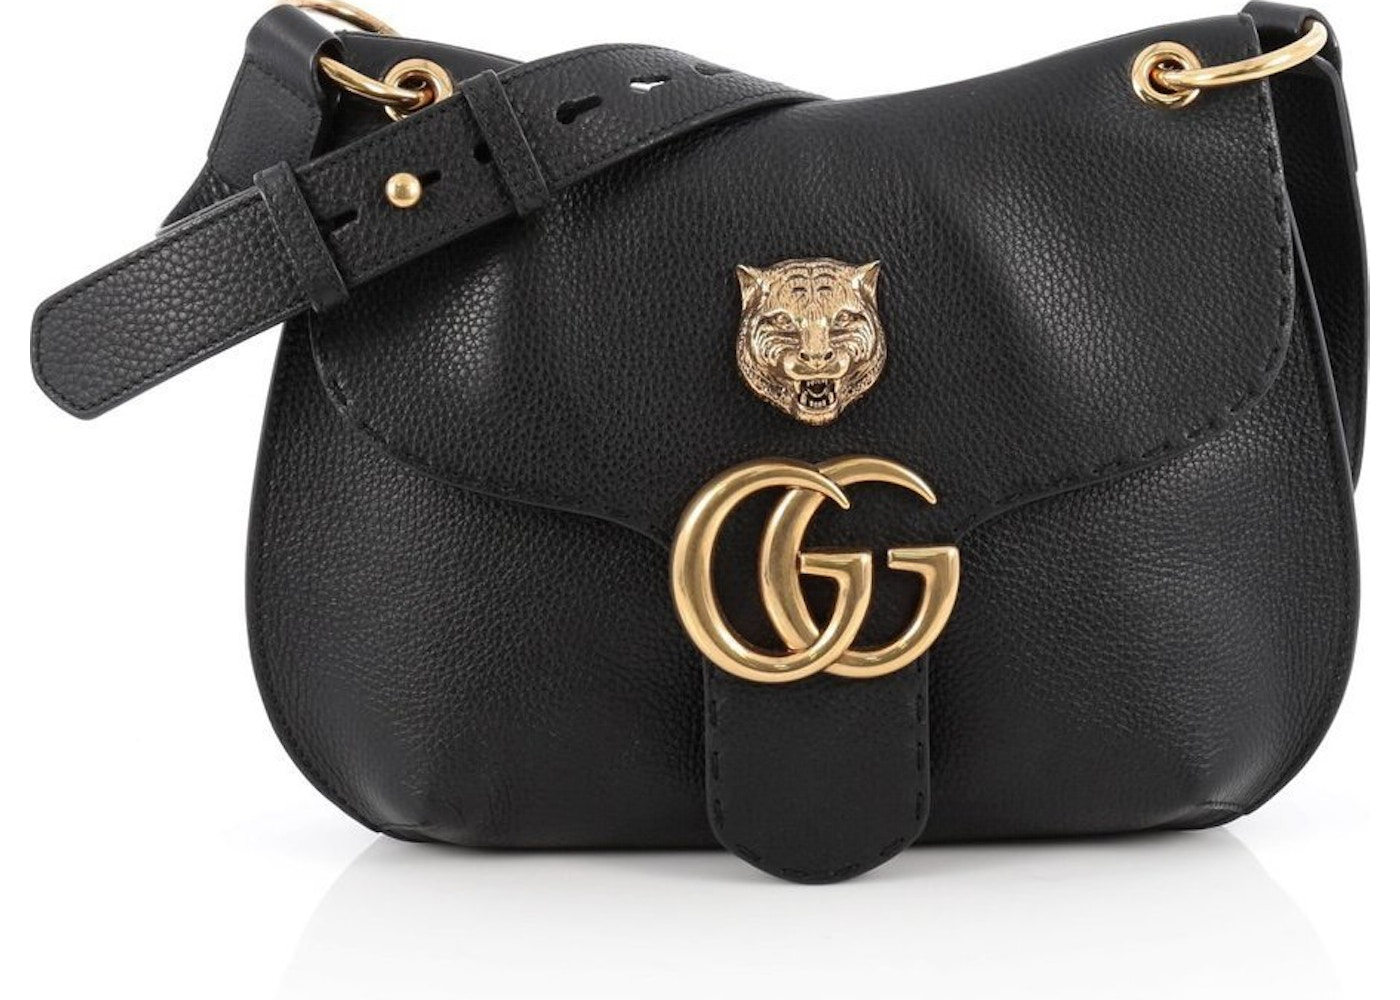 7b72206a08f8 Buy & Sell Gucci Handbags - Average Sale Price